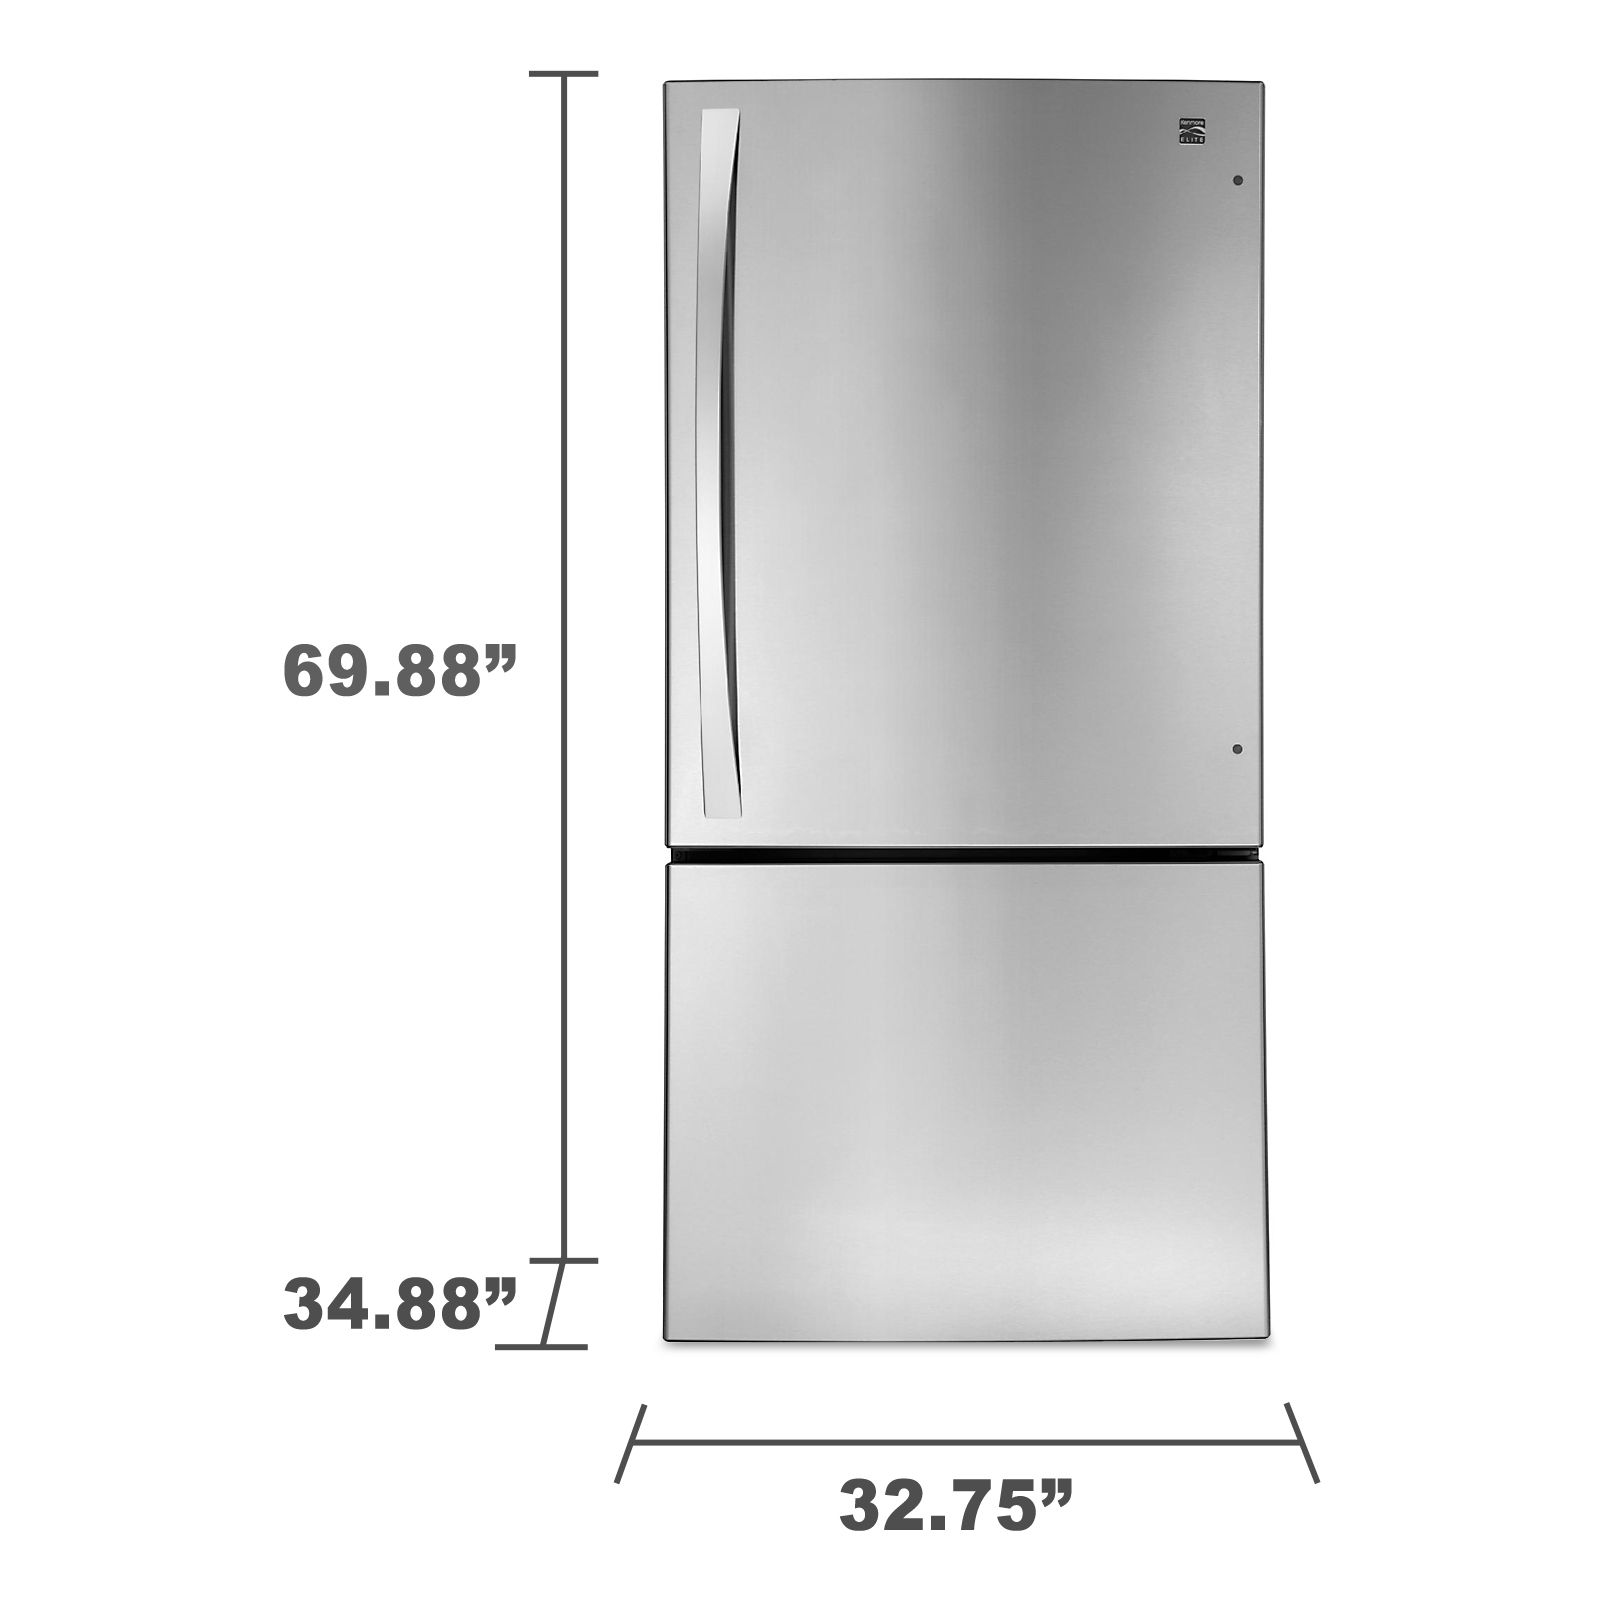 Kenmore Elite 24.1 cu. ft. Bottom-Freezer Refrigerator - Stainless Steel